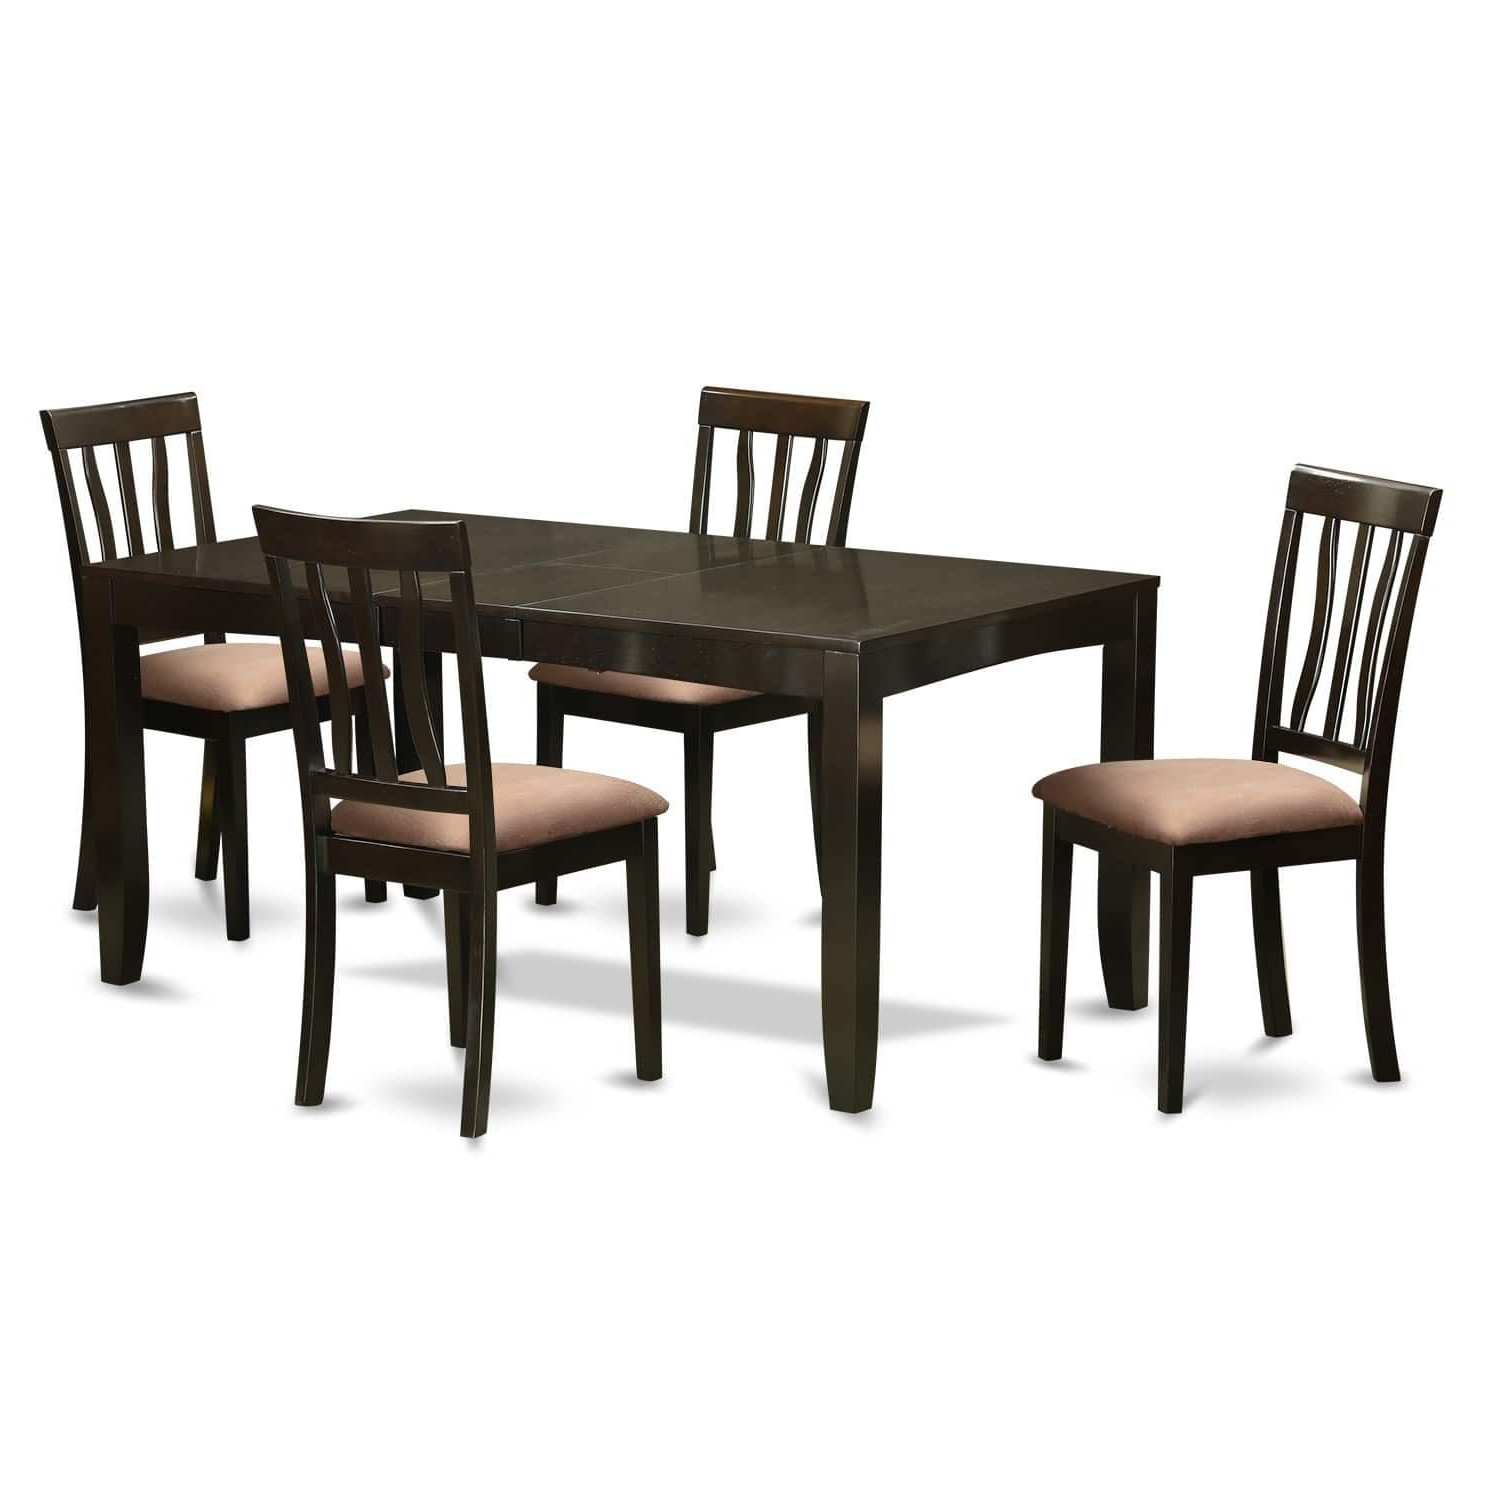 Well Known Smyrna 3 Piece Dining Sets With Regard To Lyan5 Cap 5 Pc Dining Set For 4 Tables With Leaf And 4 Chairs (View 6 of 25)